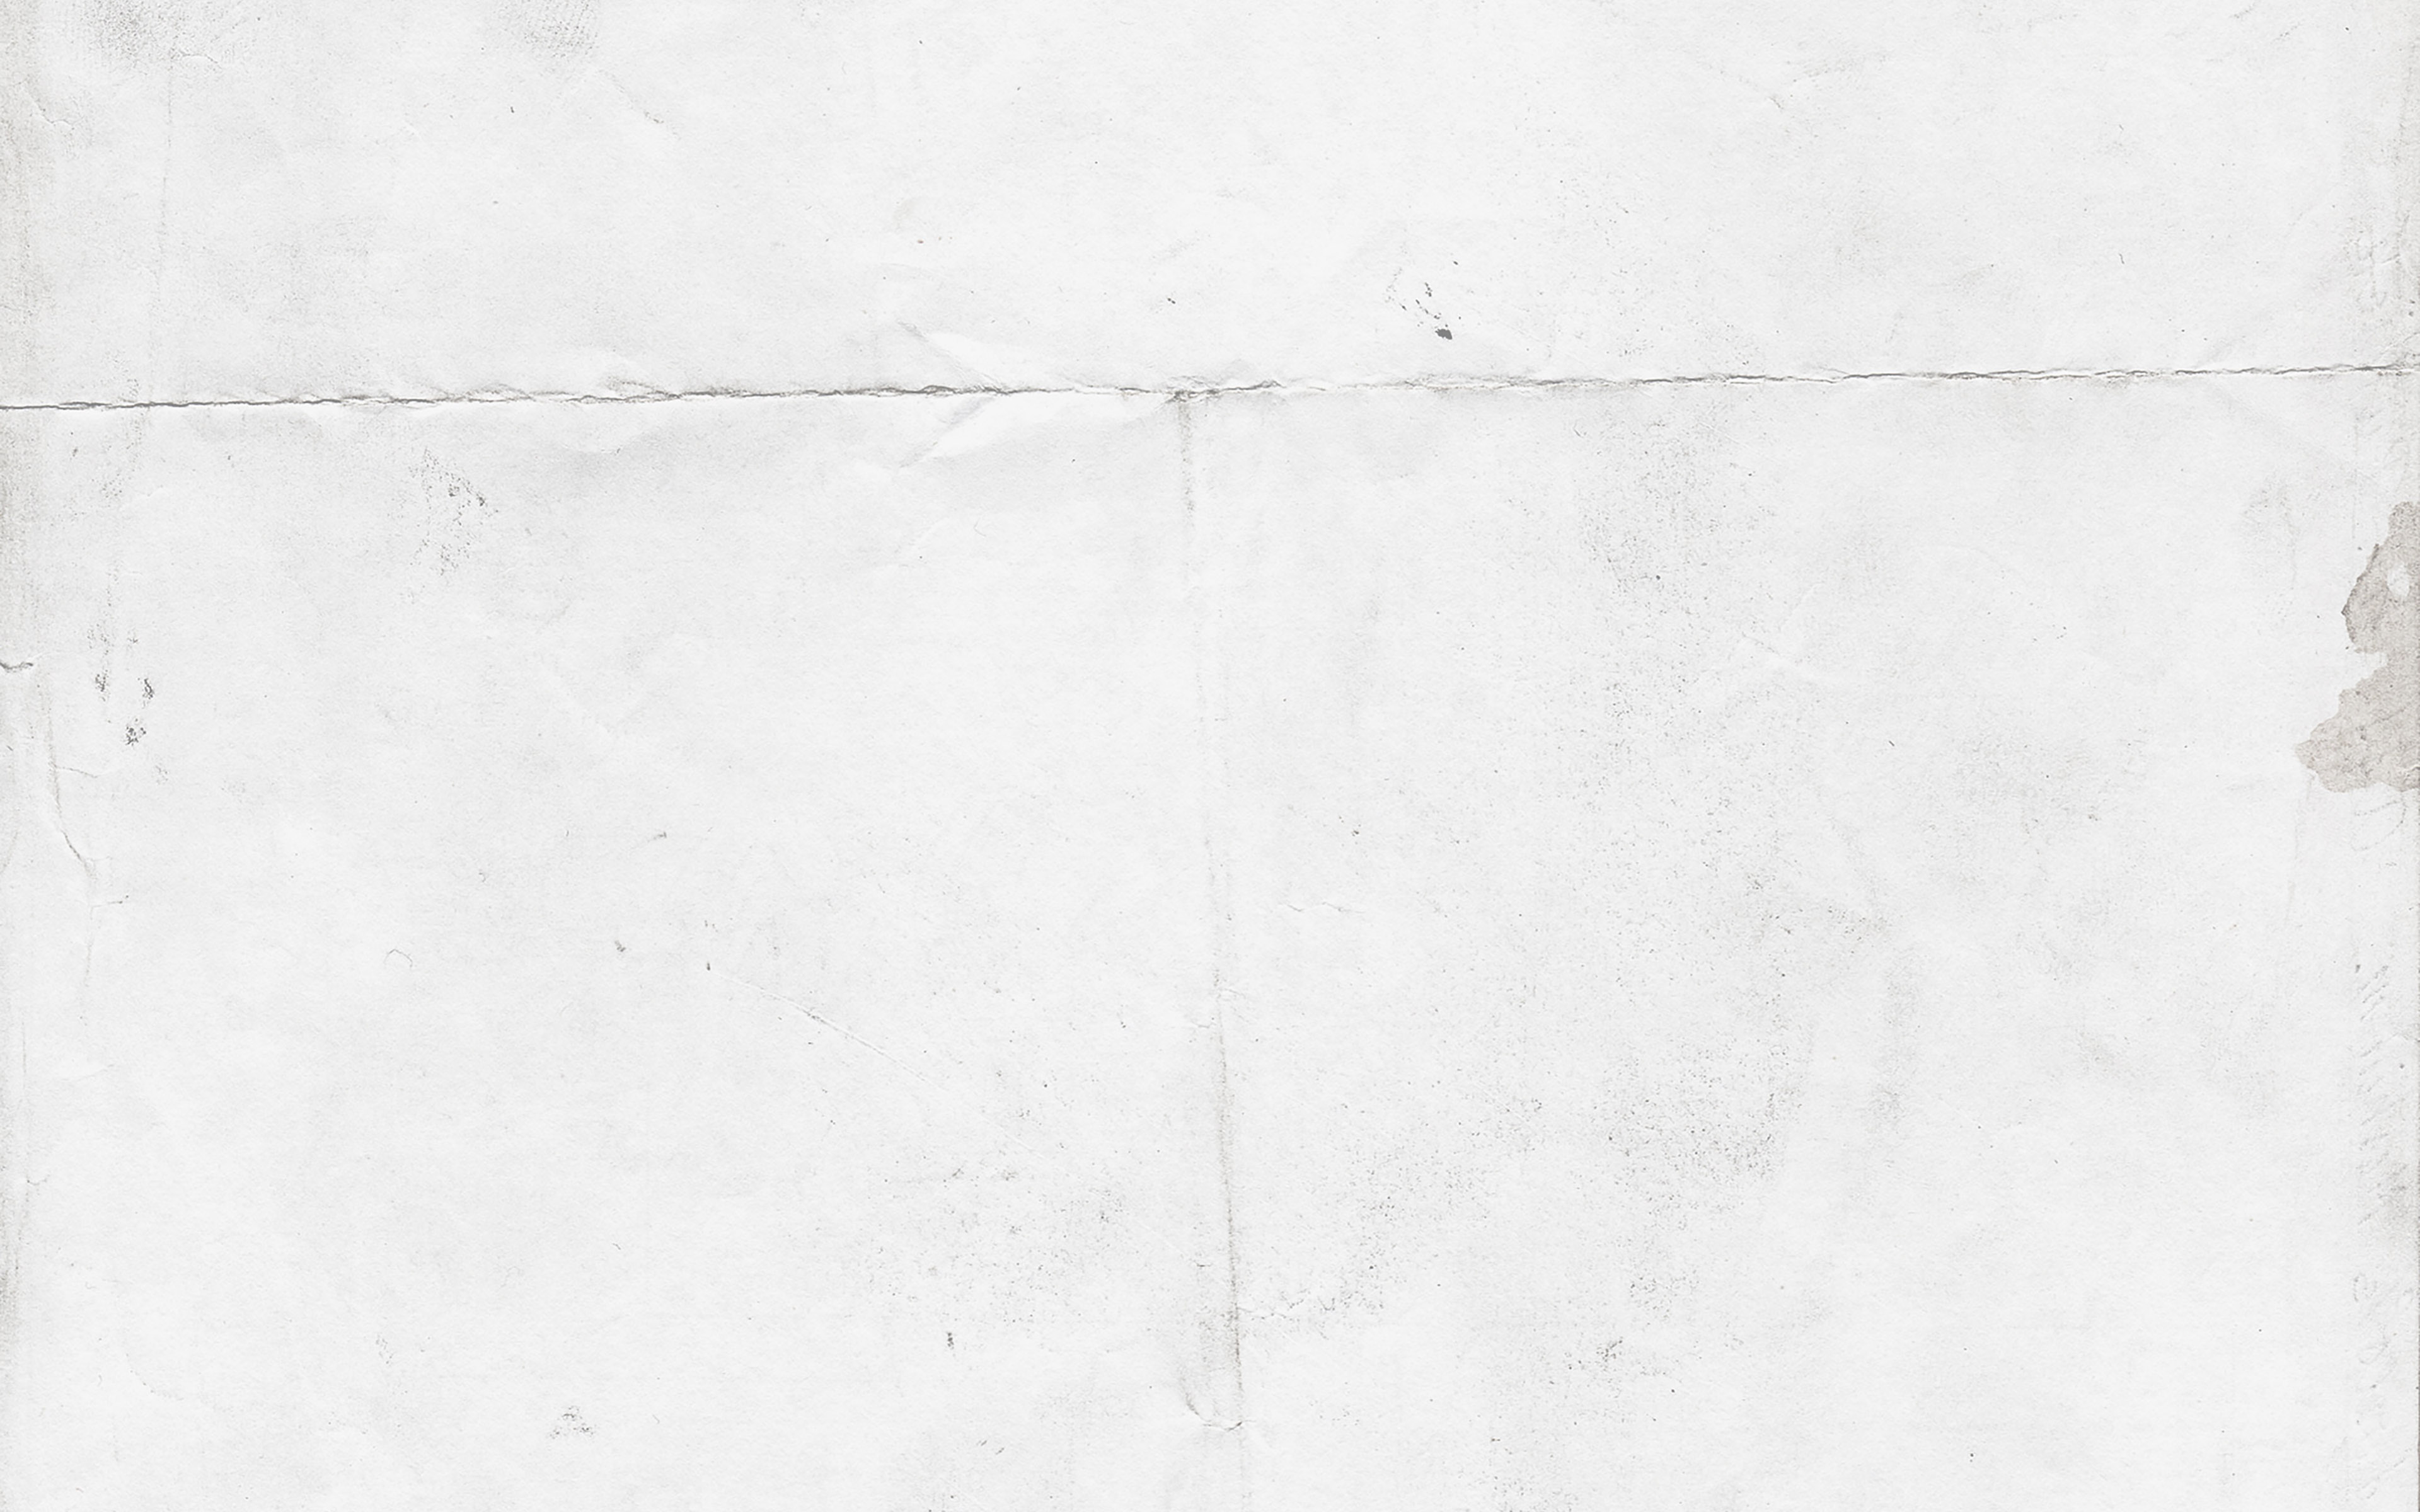 ab57-wallpaper-grunge-paper-texture-white